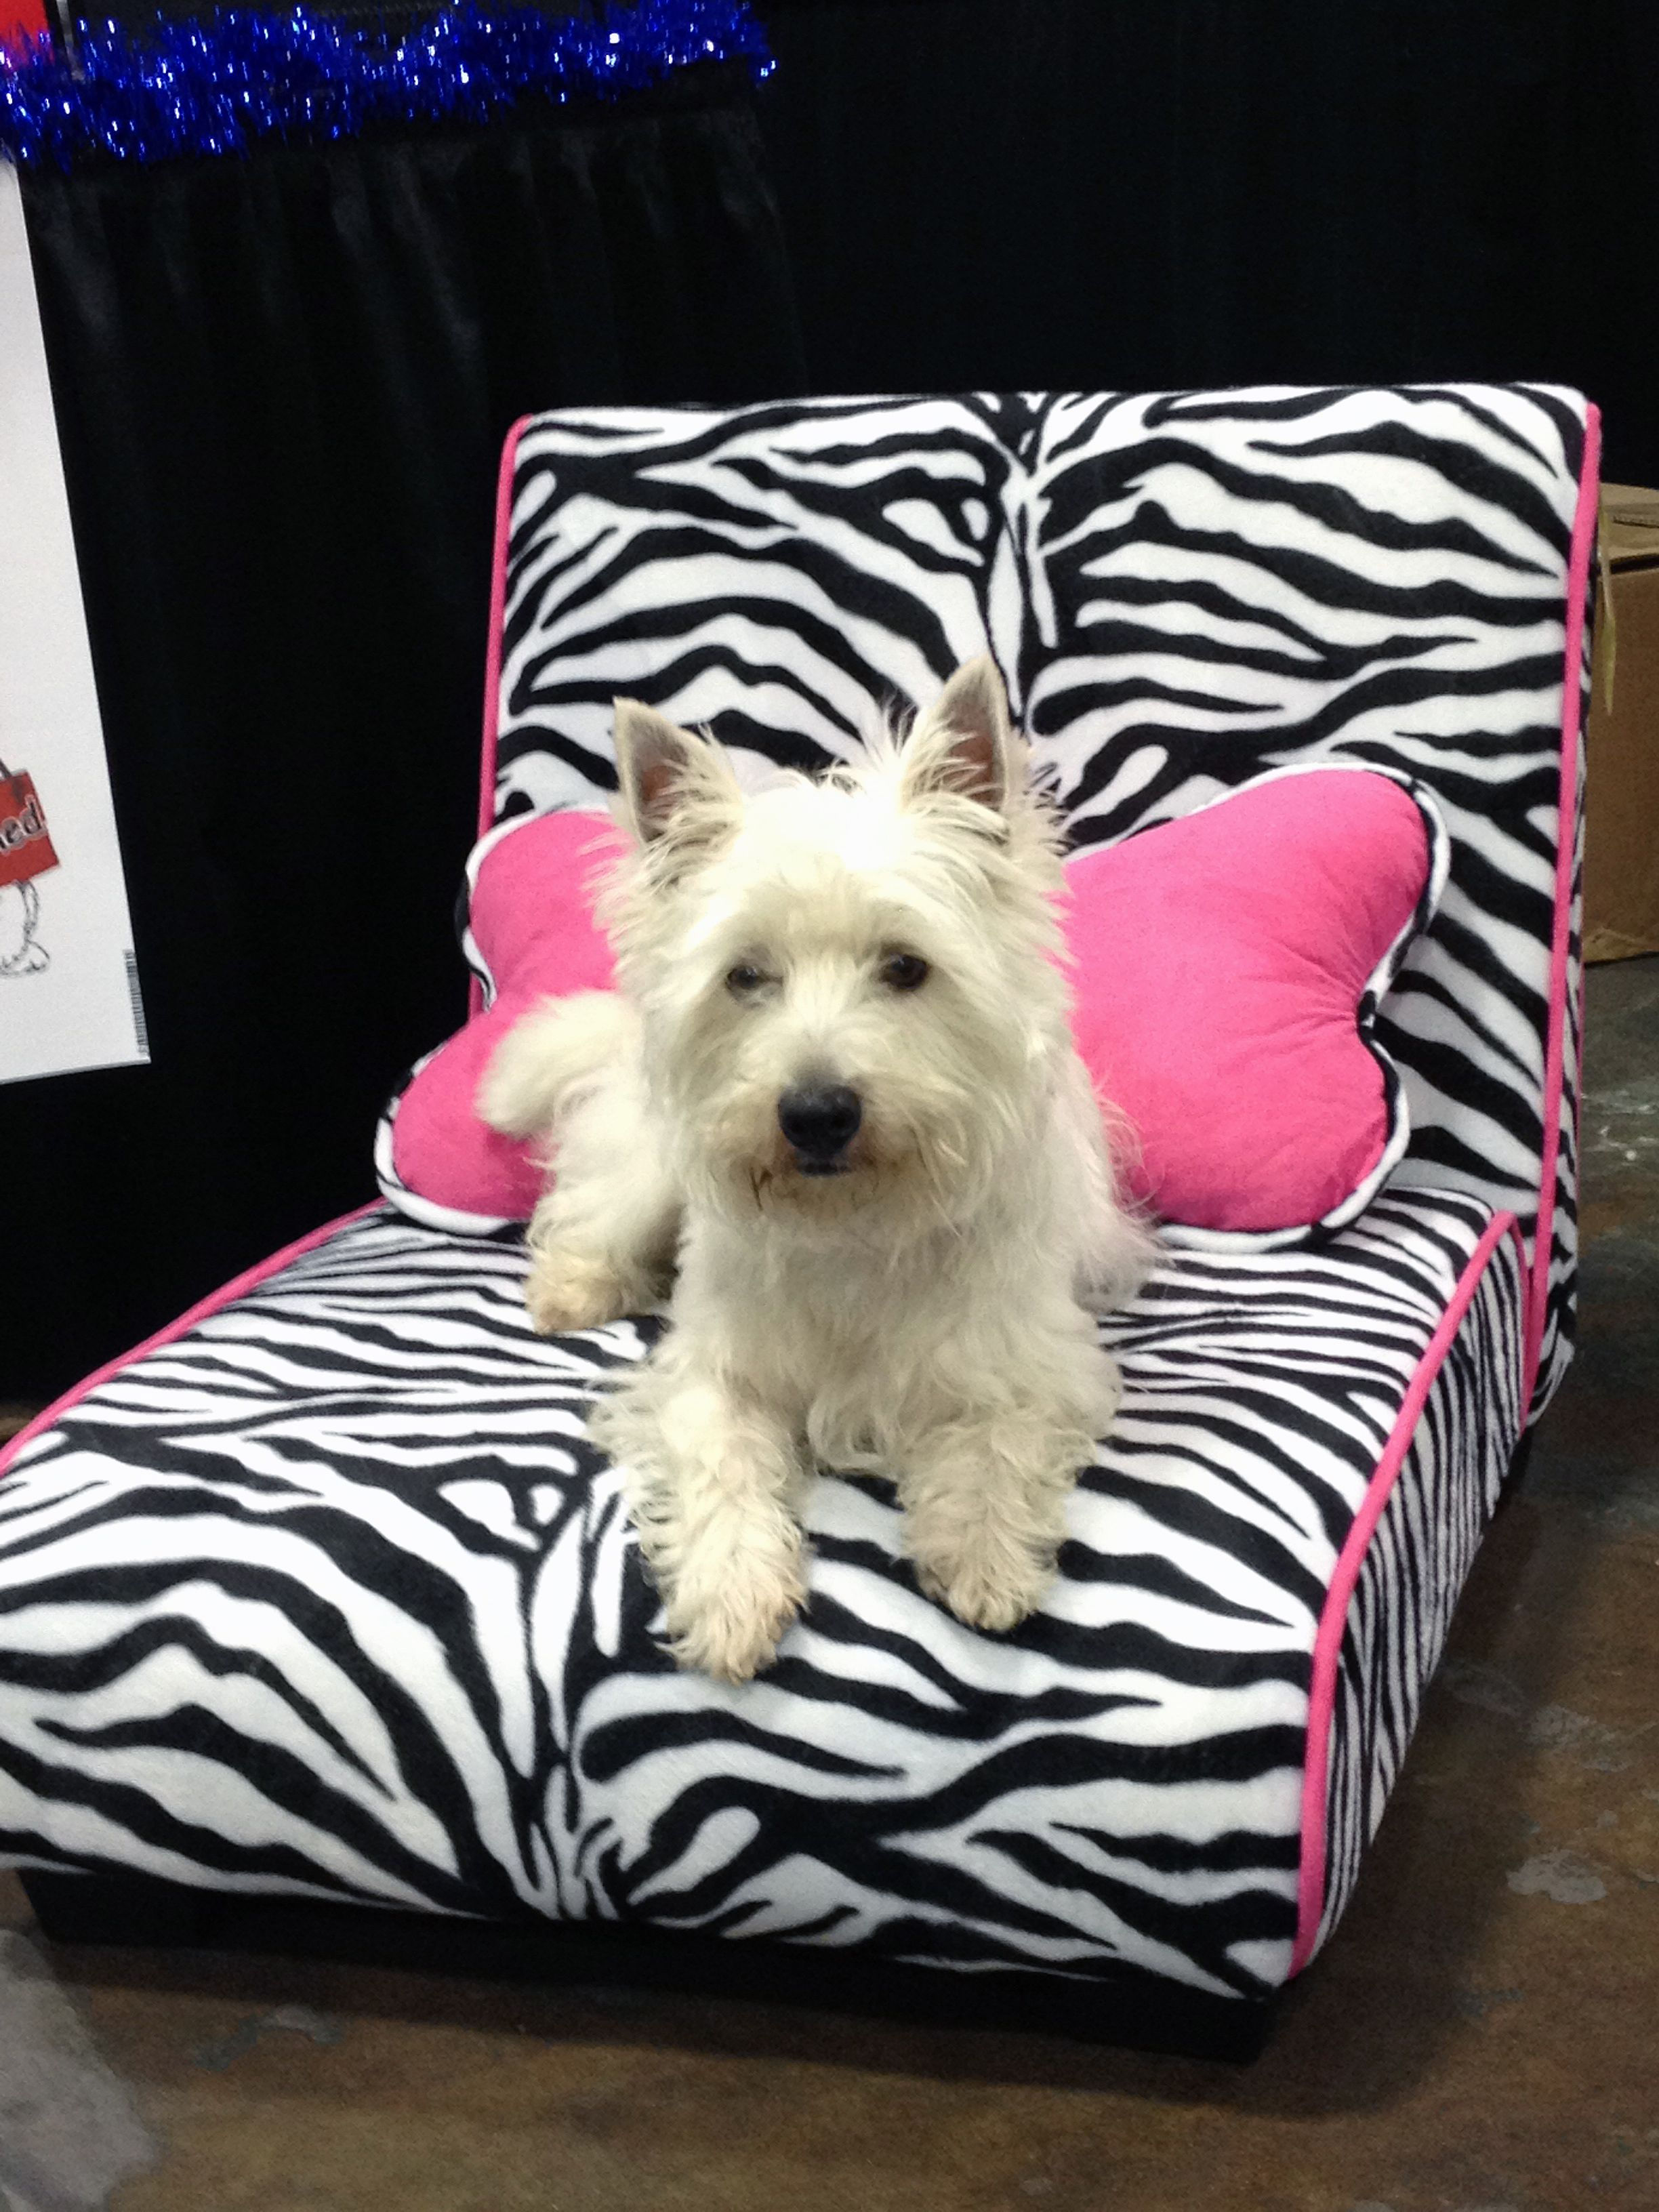 2012 Holiday Pet Expo Diane Pet Expos Coverage Of The 2012 2014 Amazing Pet Expos From Their Online Ambassador Pet Holiday Pets West Highland White Terrier